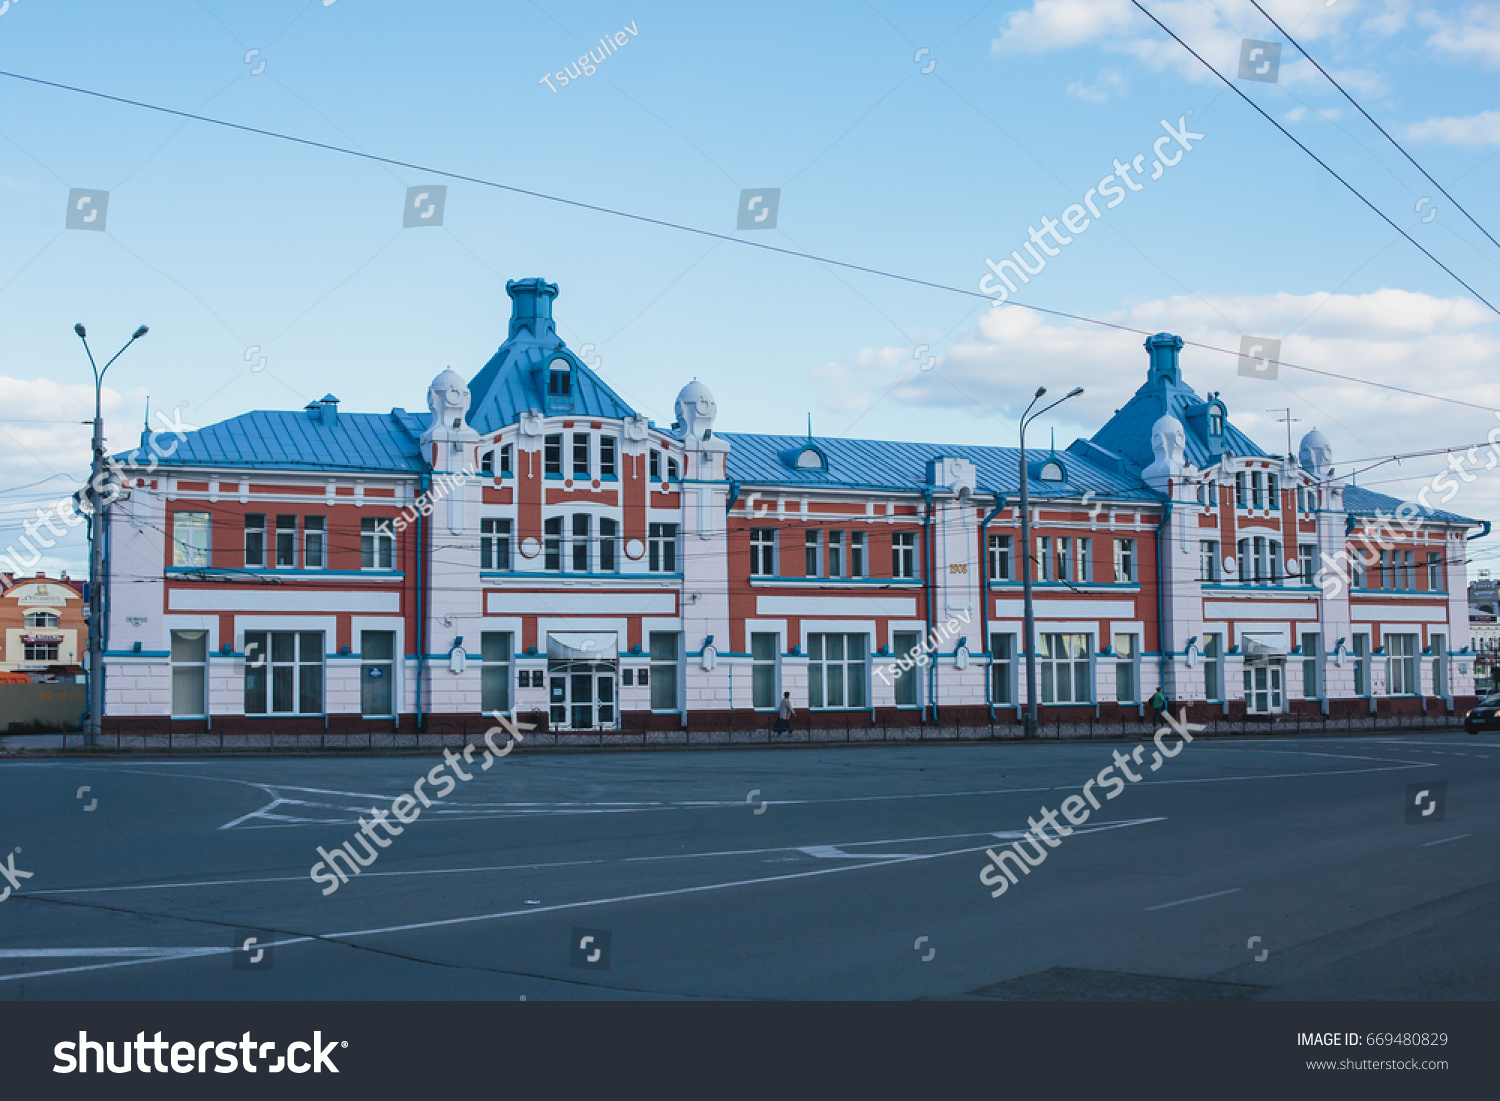 Where did the city of Tomsk come from